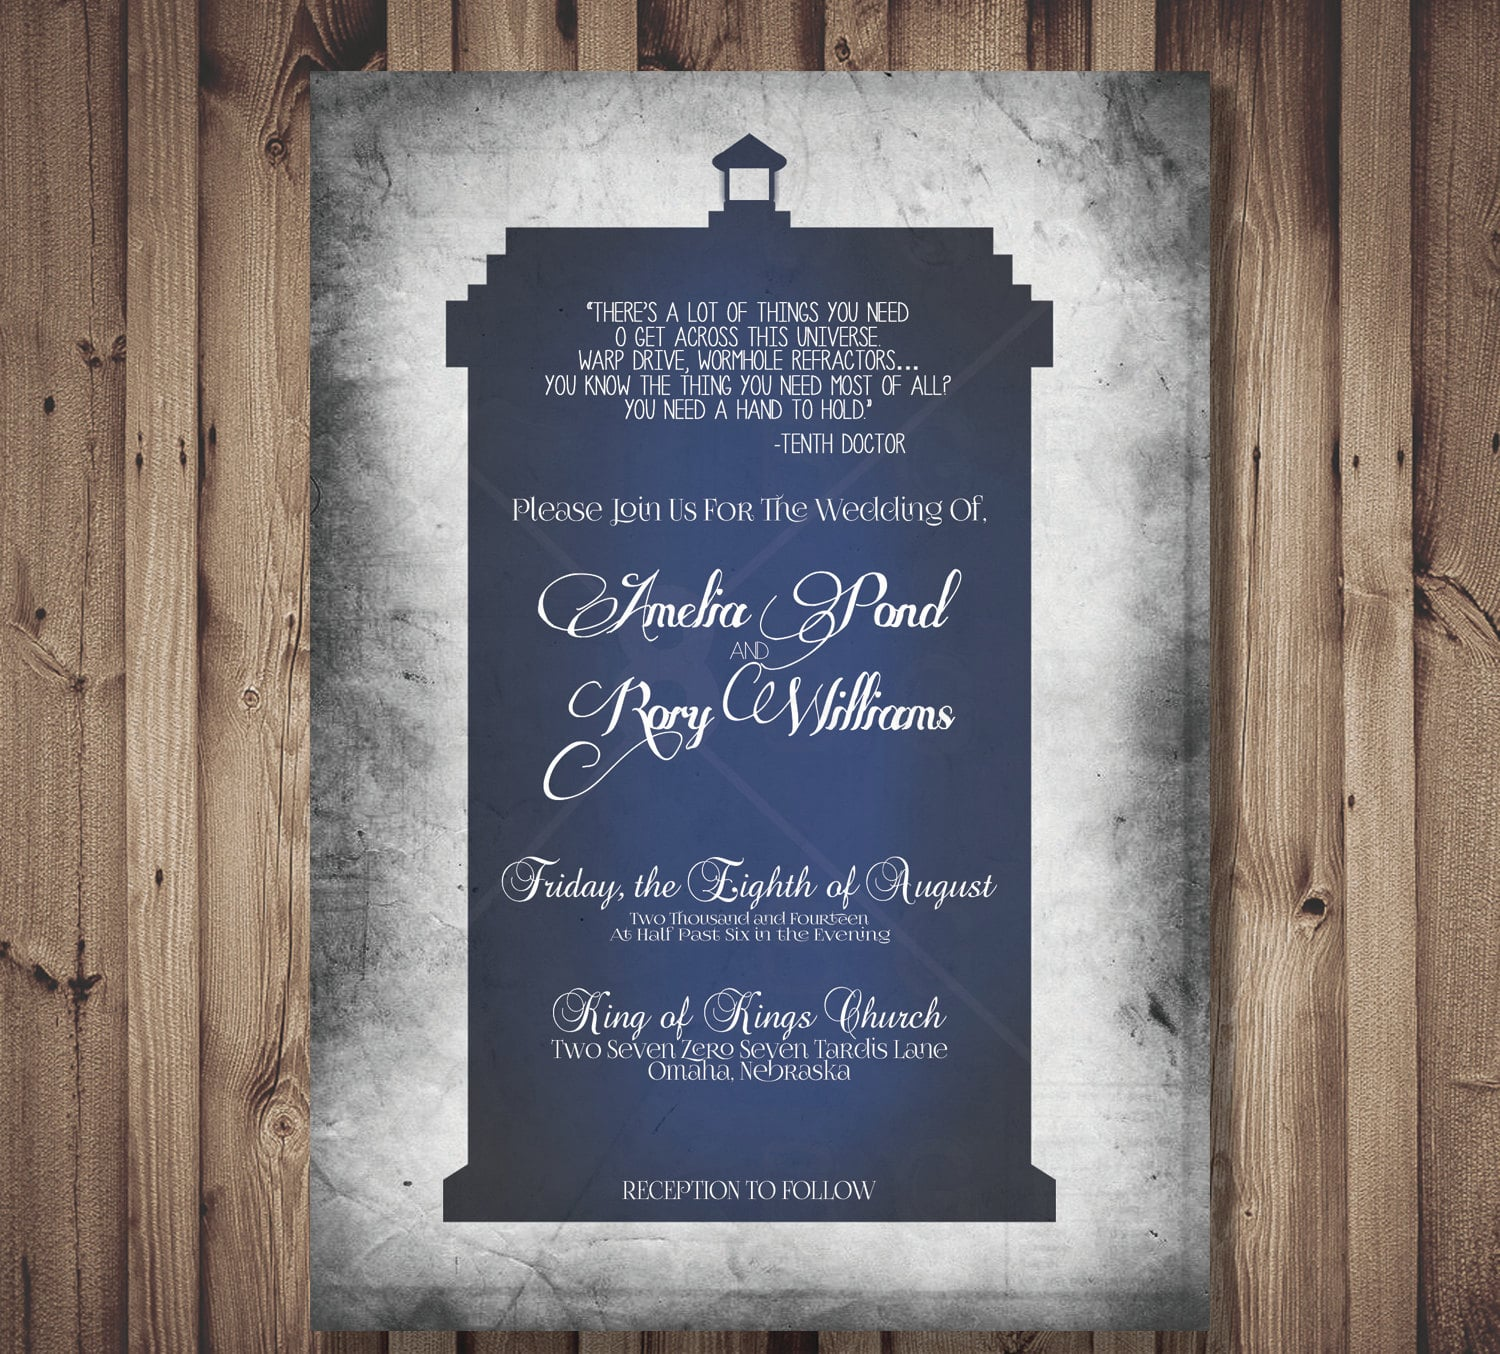 It's pretty much a guarantee that Doctor Who fans will fawn over these printable TARDIS invites ($13 for digital file).